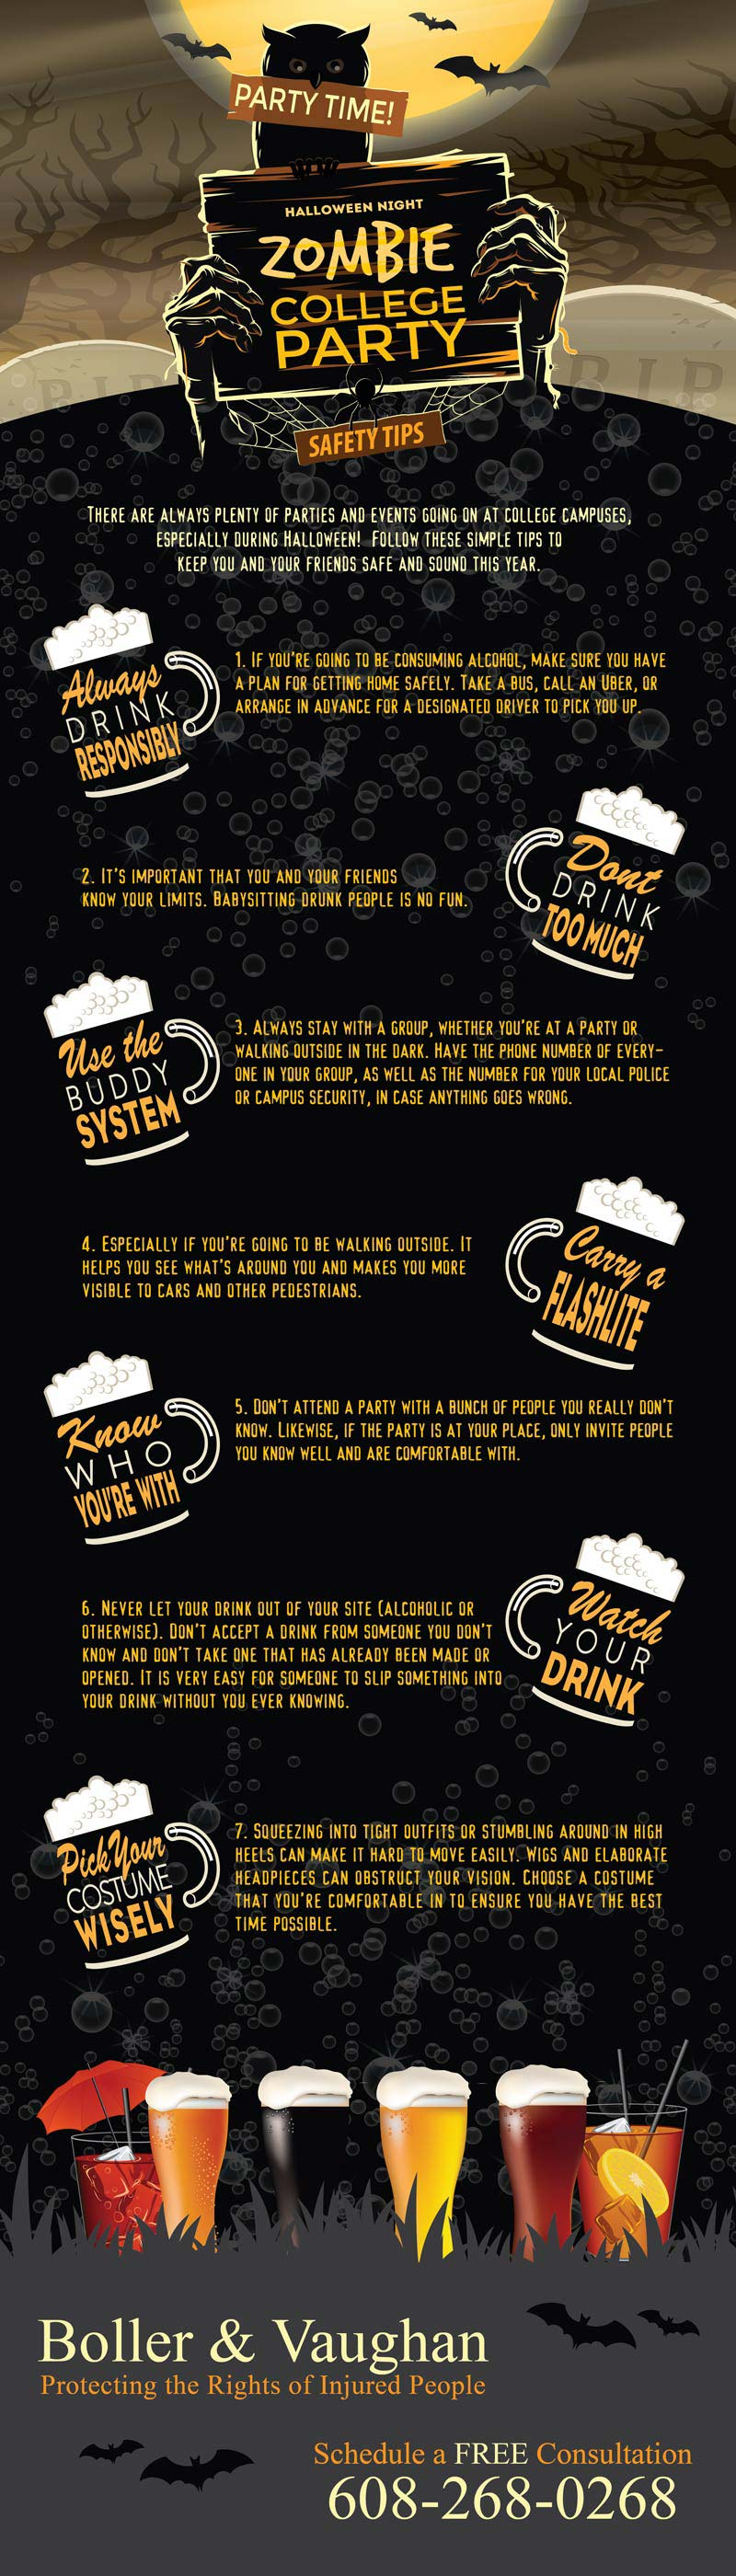 college halloween party safety tips